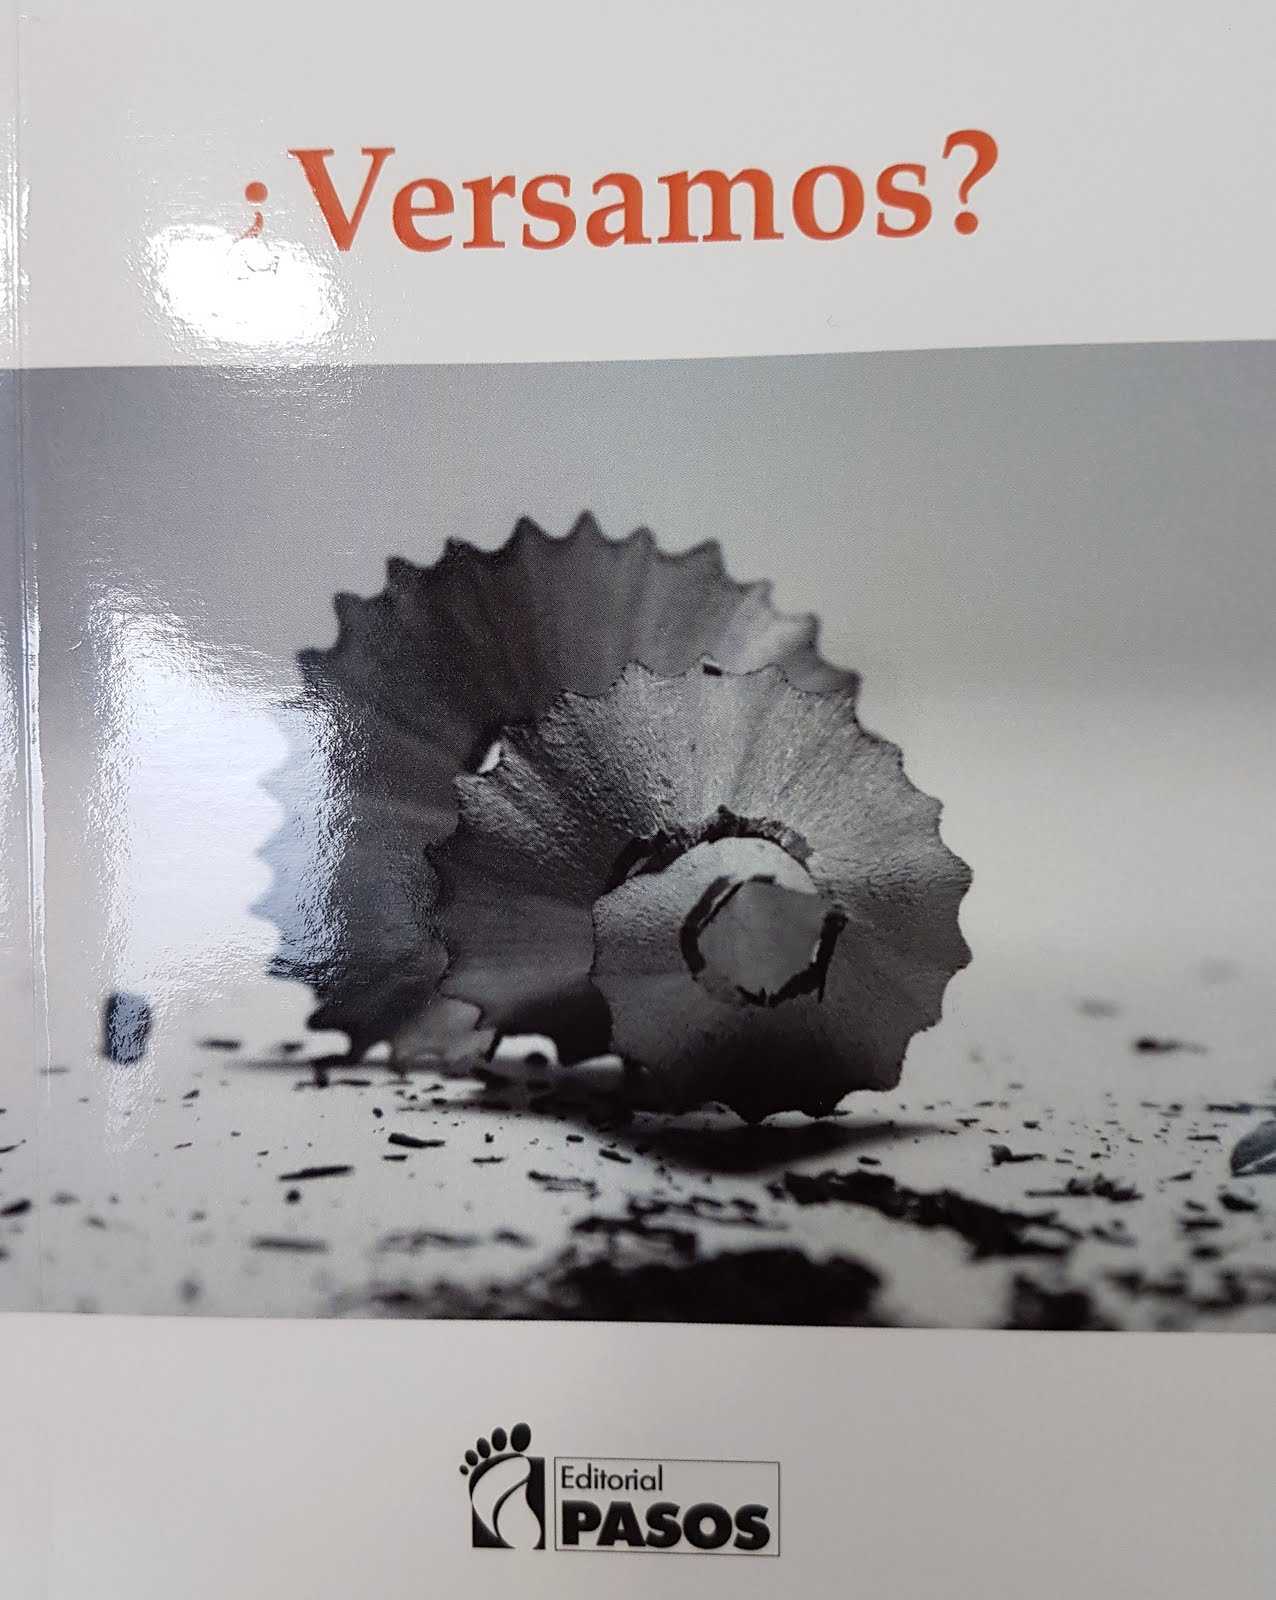 VERSAMOS - EDITORIAL PASOS